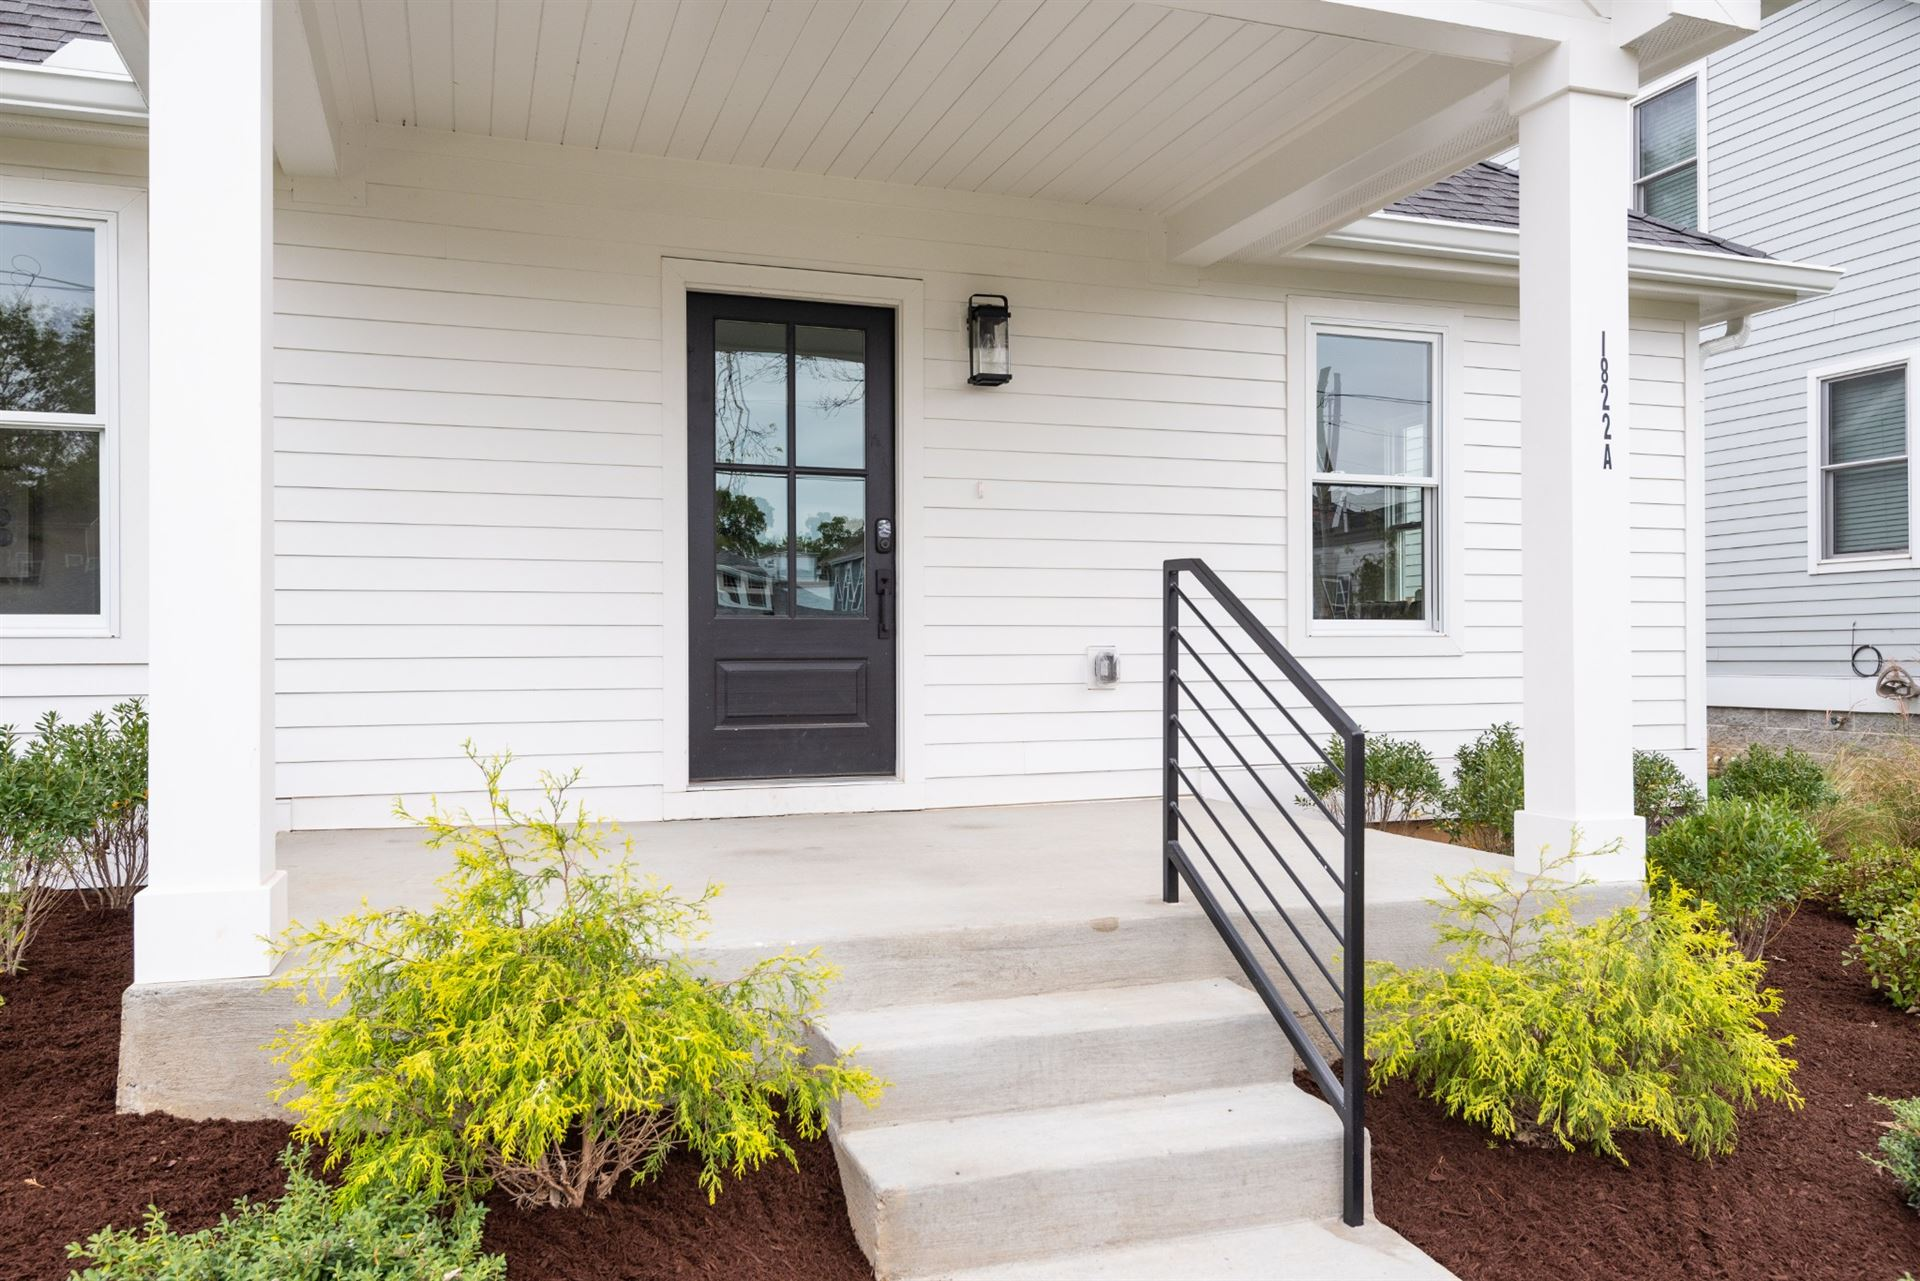 Photo of 1822A 5th Ave N, Nashville, TN 37208 (MLS # 2303350)